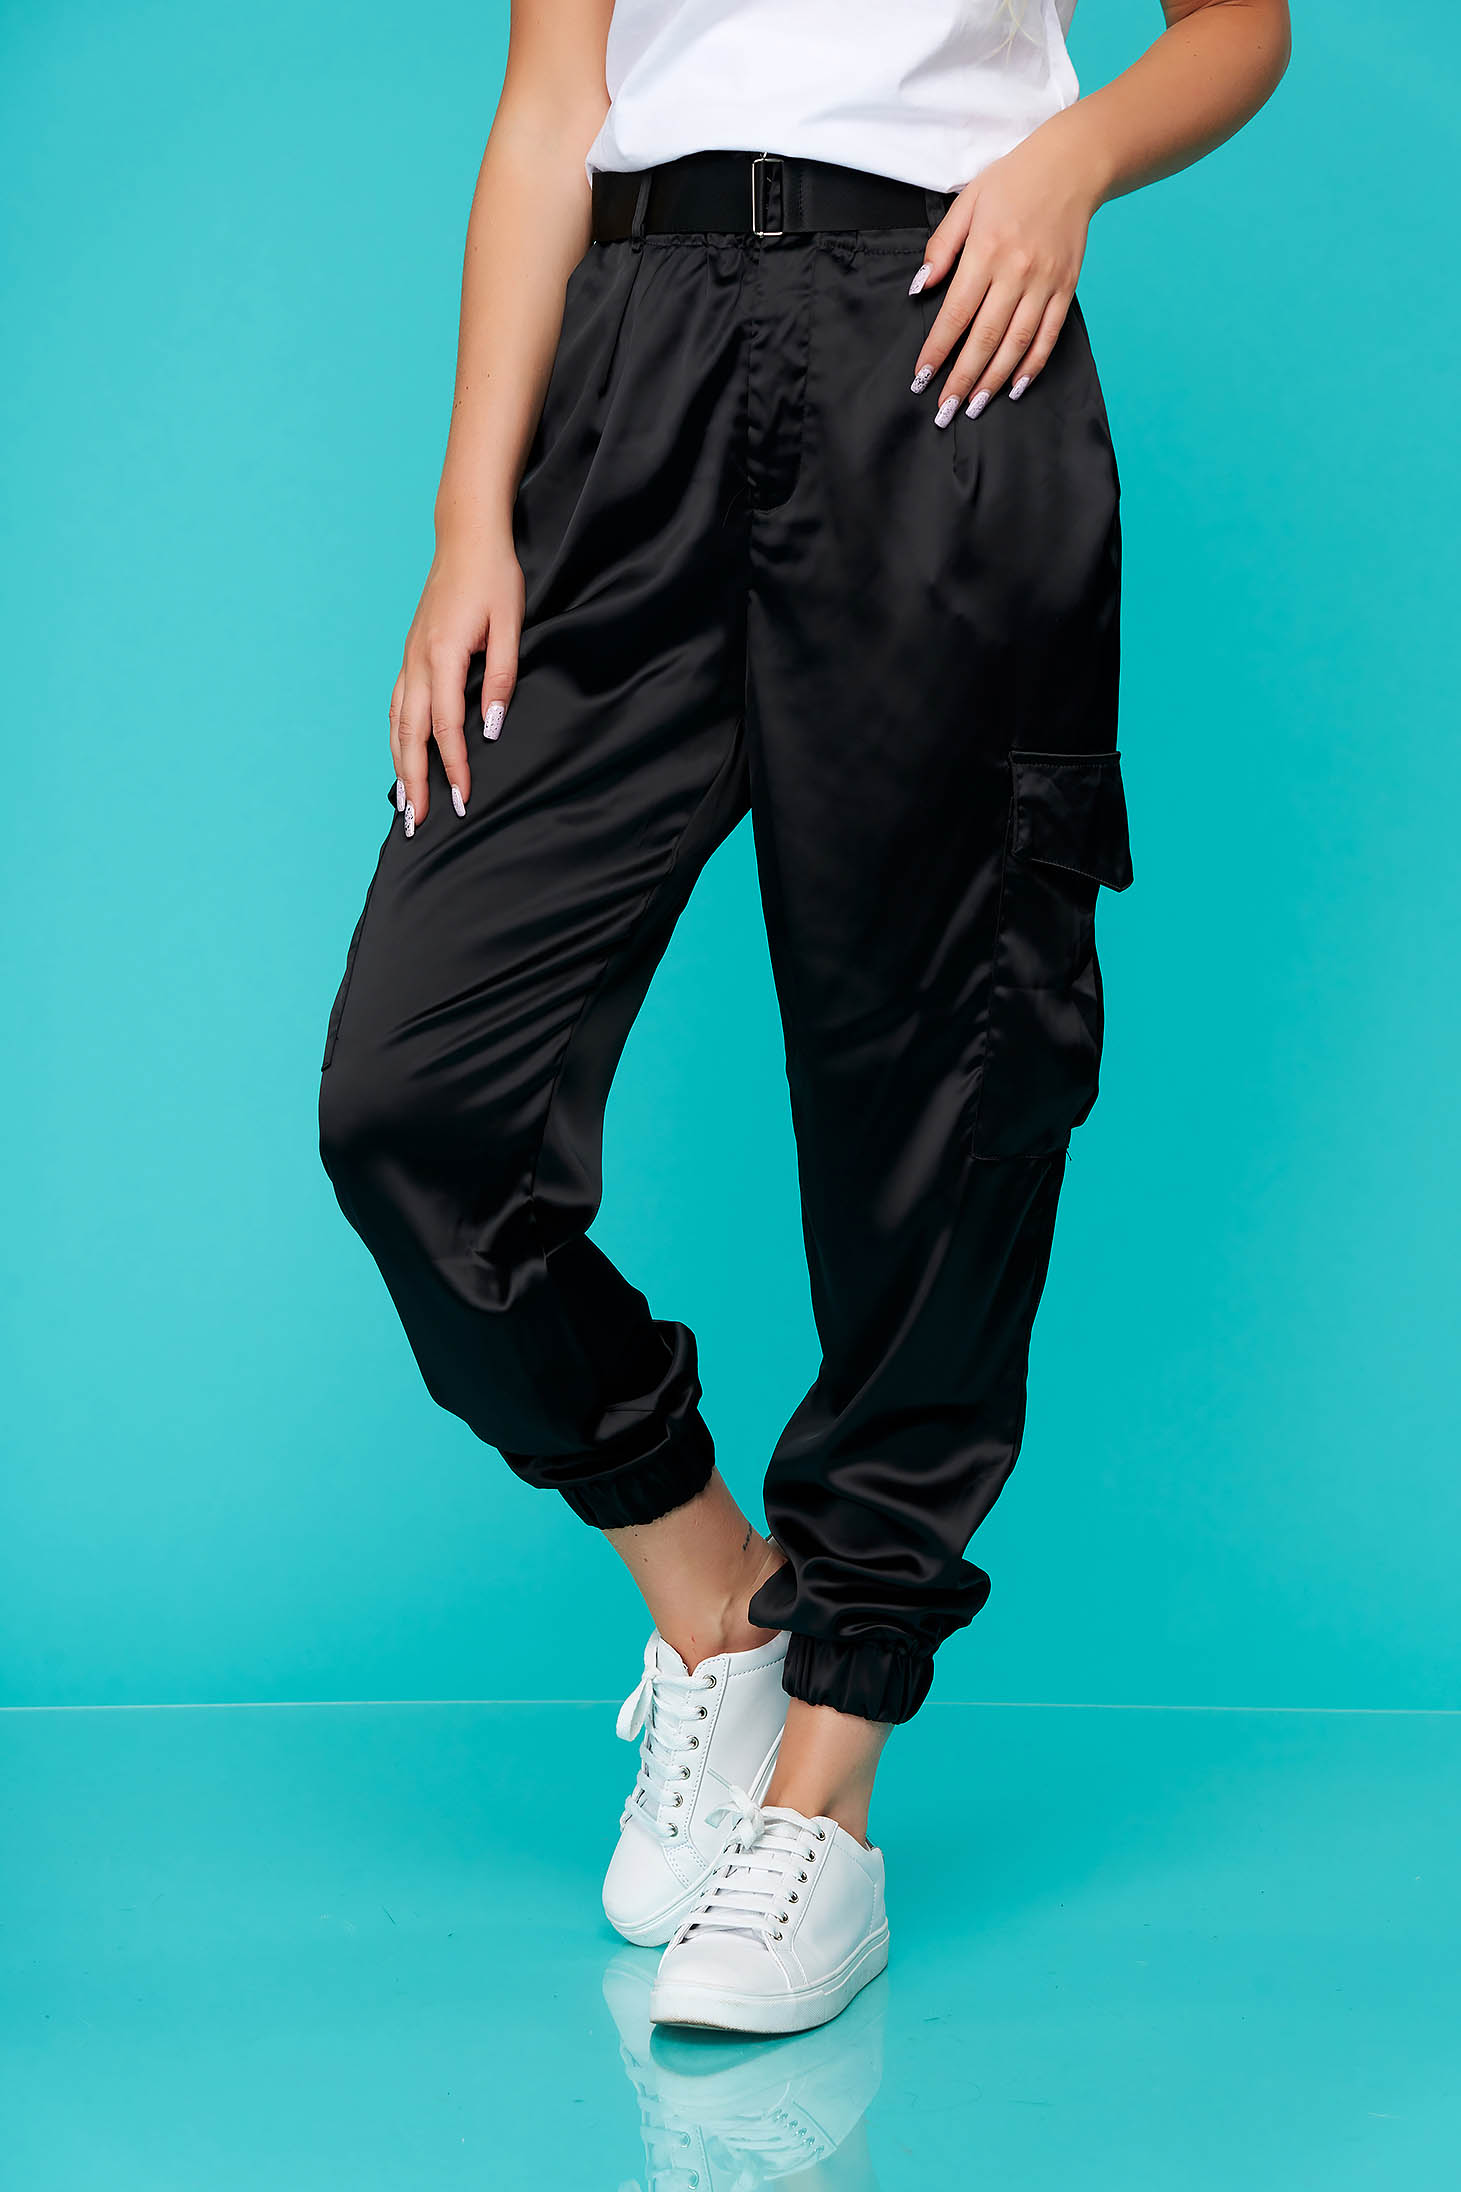 Black casual conical trousers from satin with pockets accessorized with belt